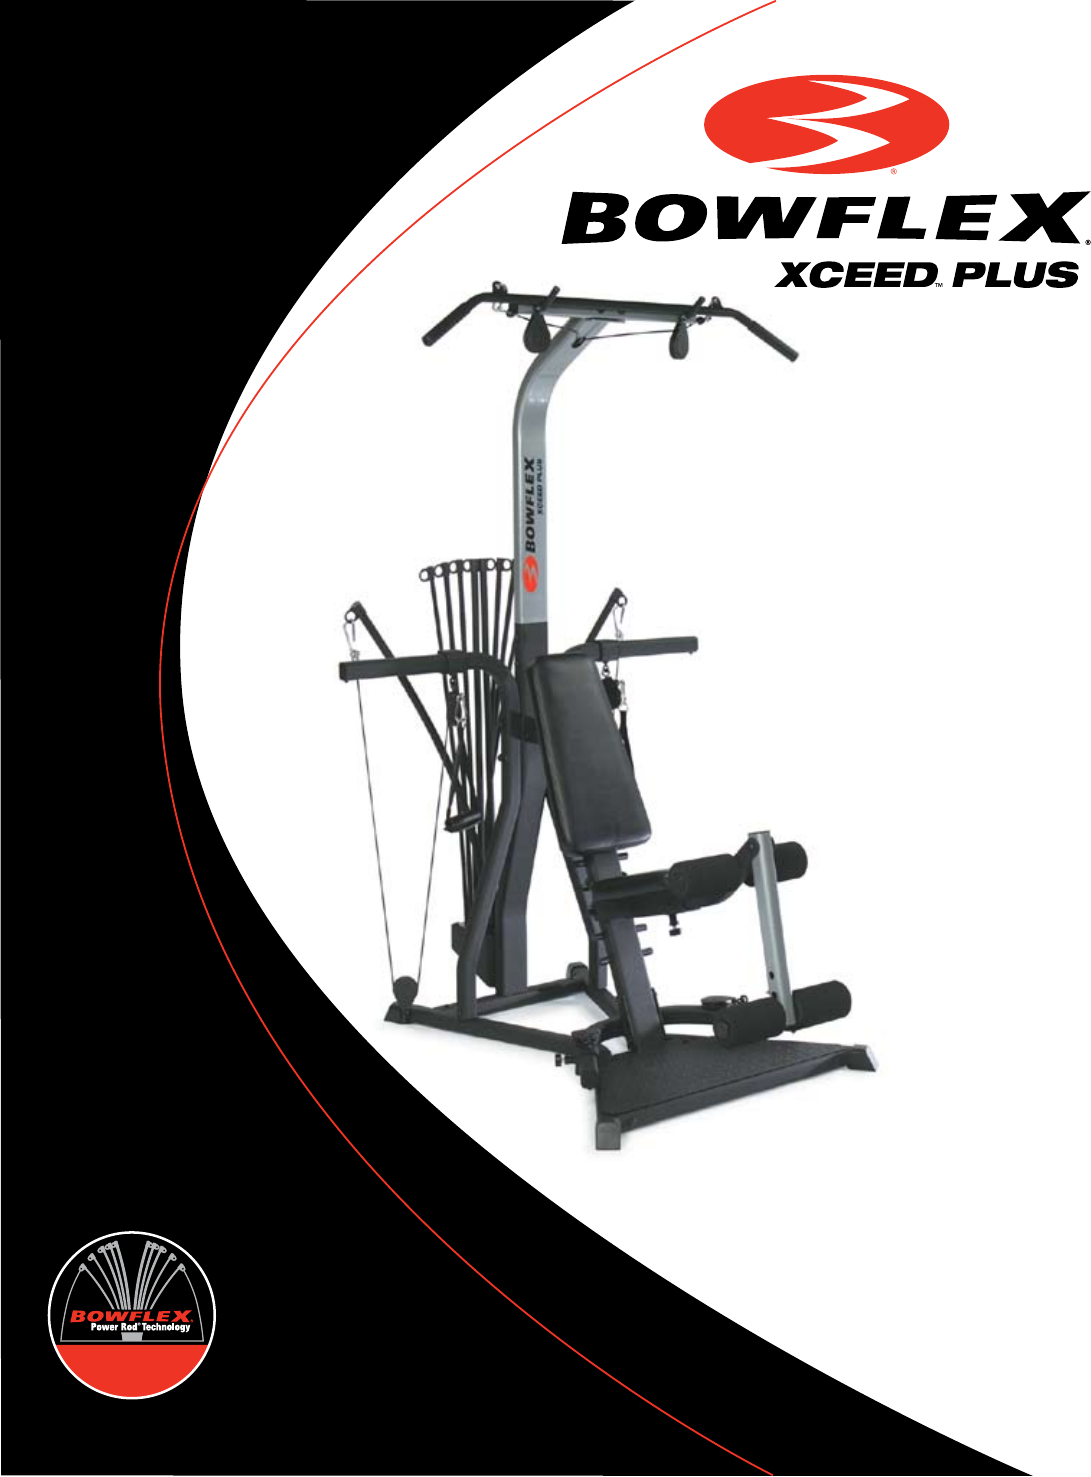 bowflex home gym xceed plus user guide manualsonline com rh fitness manualsonline com bowflex xceed assembly instructions Bowflex AB Attachment